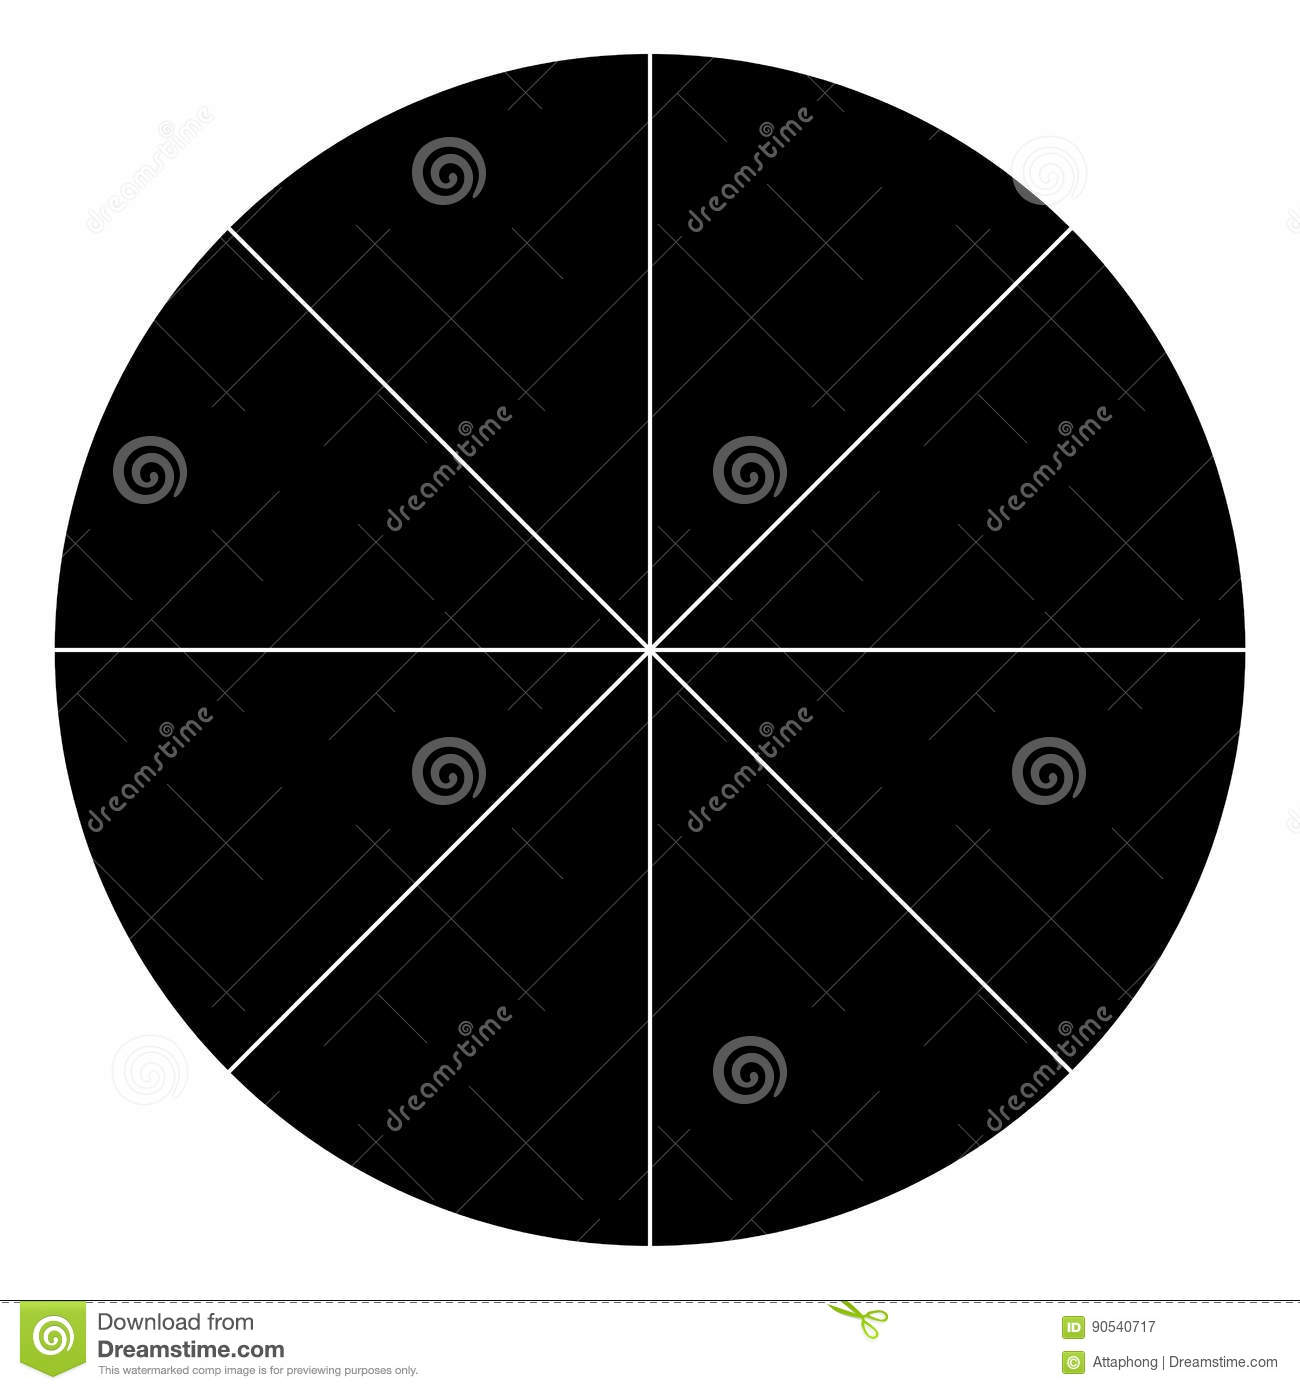 degree circle diagram wiring for two way switch uk blank polar graph paper protractor pie chart vector